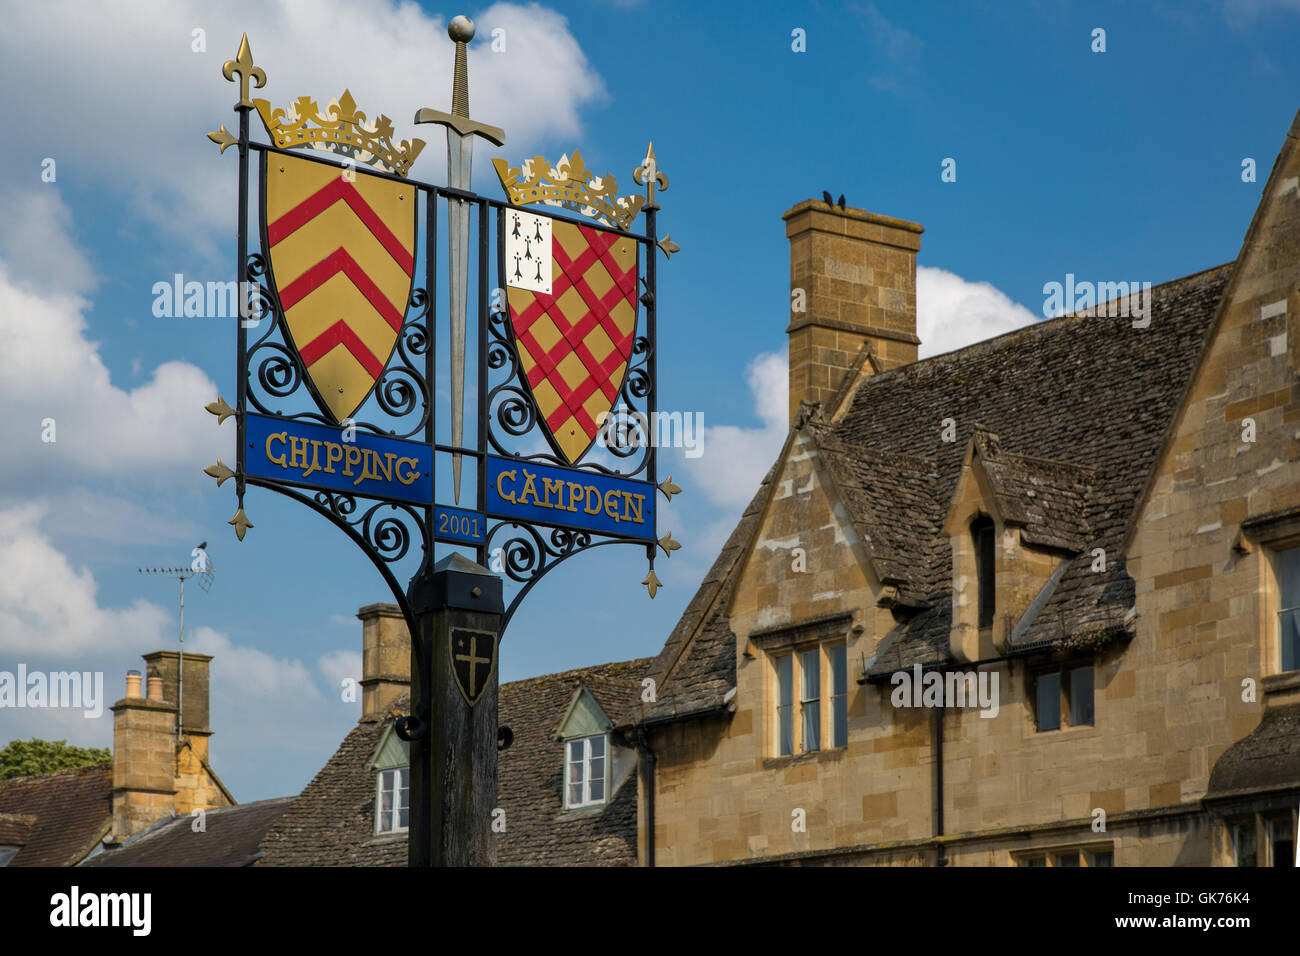 Town Crest sign and buildings of Chipping Campden, the Cotswolds, Gloucestershire, England - Stock Image